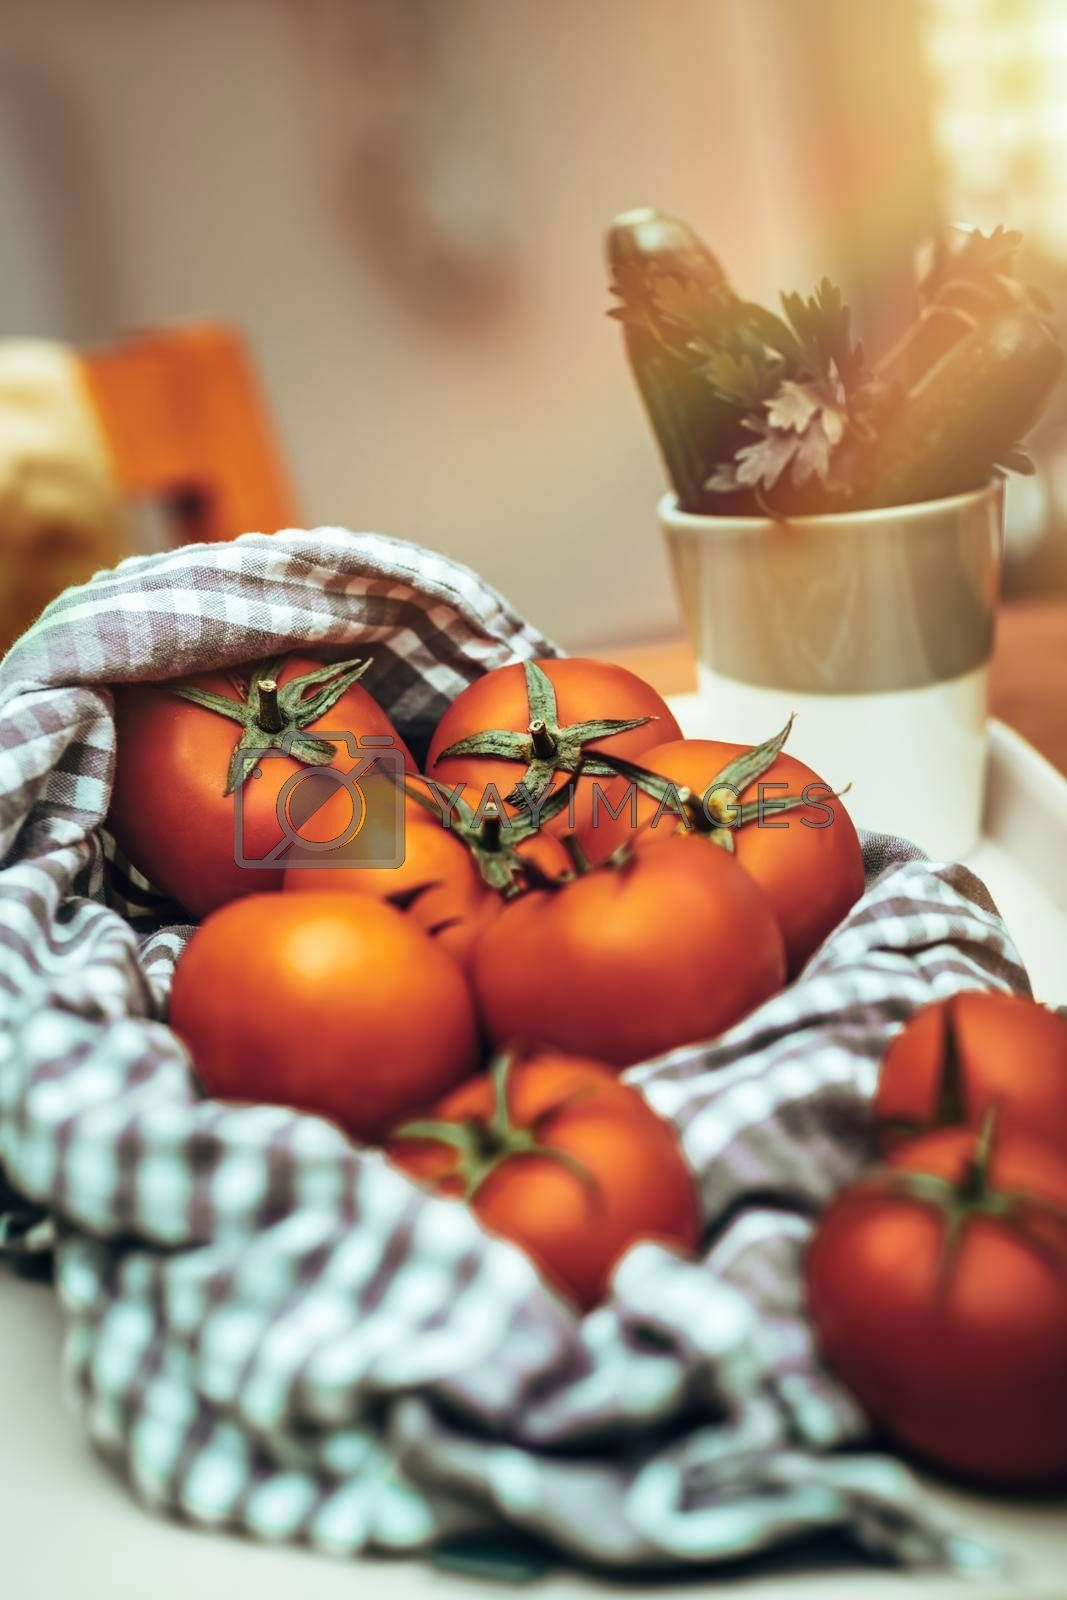 Fresh Red Ripe Tomatoes on the Table in the Kitchen. Ingredient for Salad. Homemade Vegetables. Healthy Organic Nutrition.